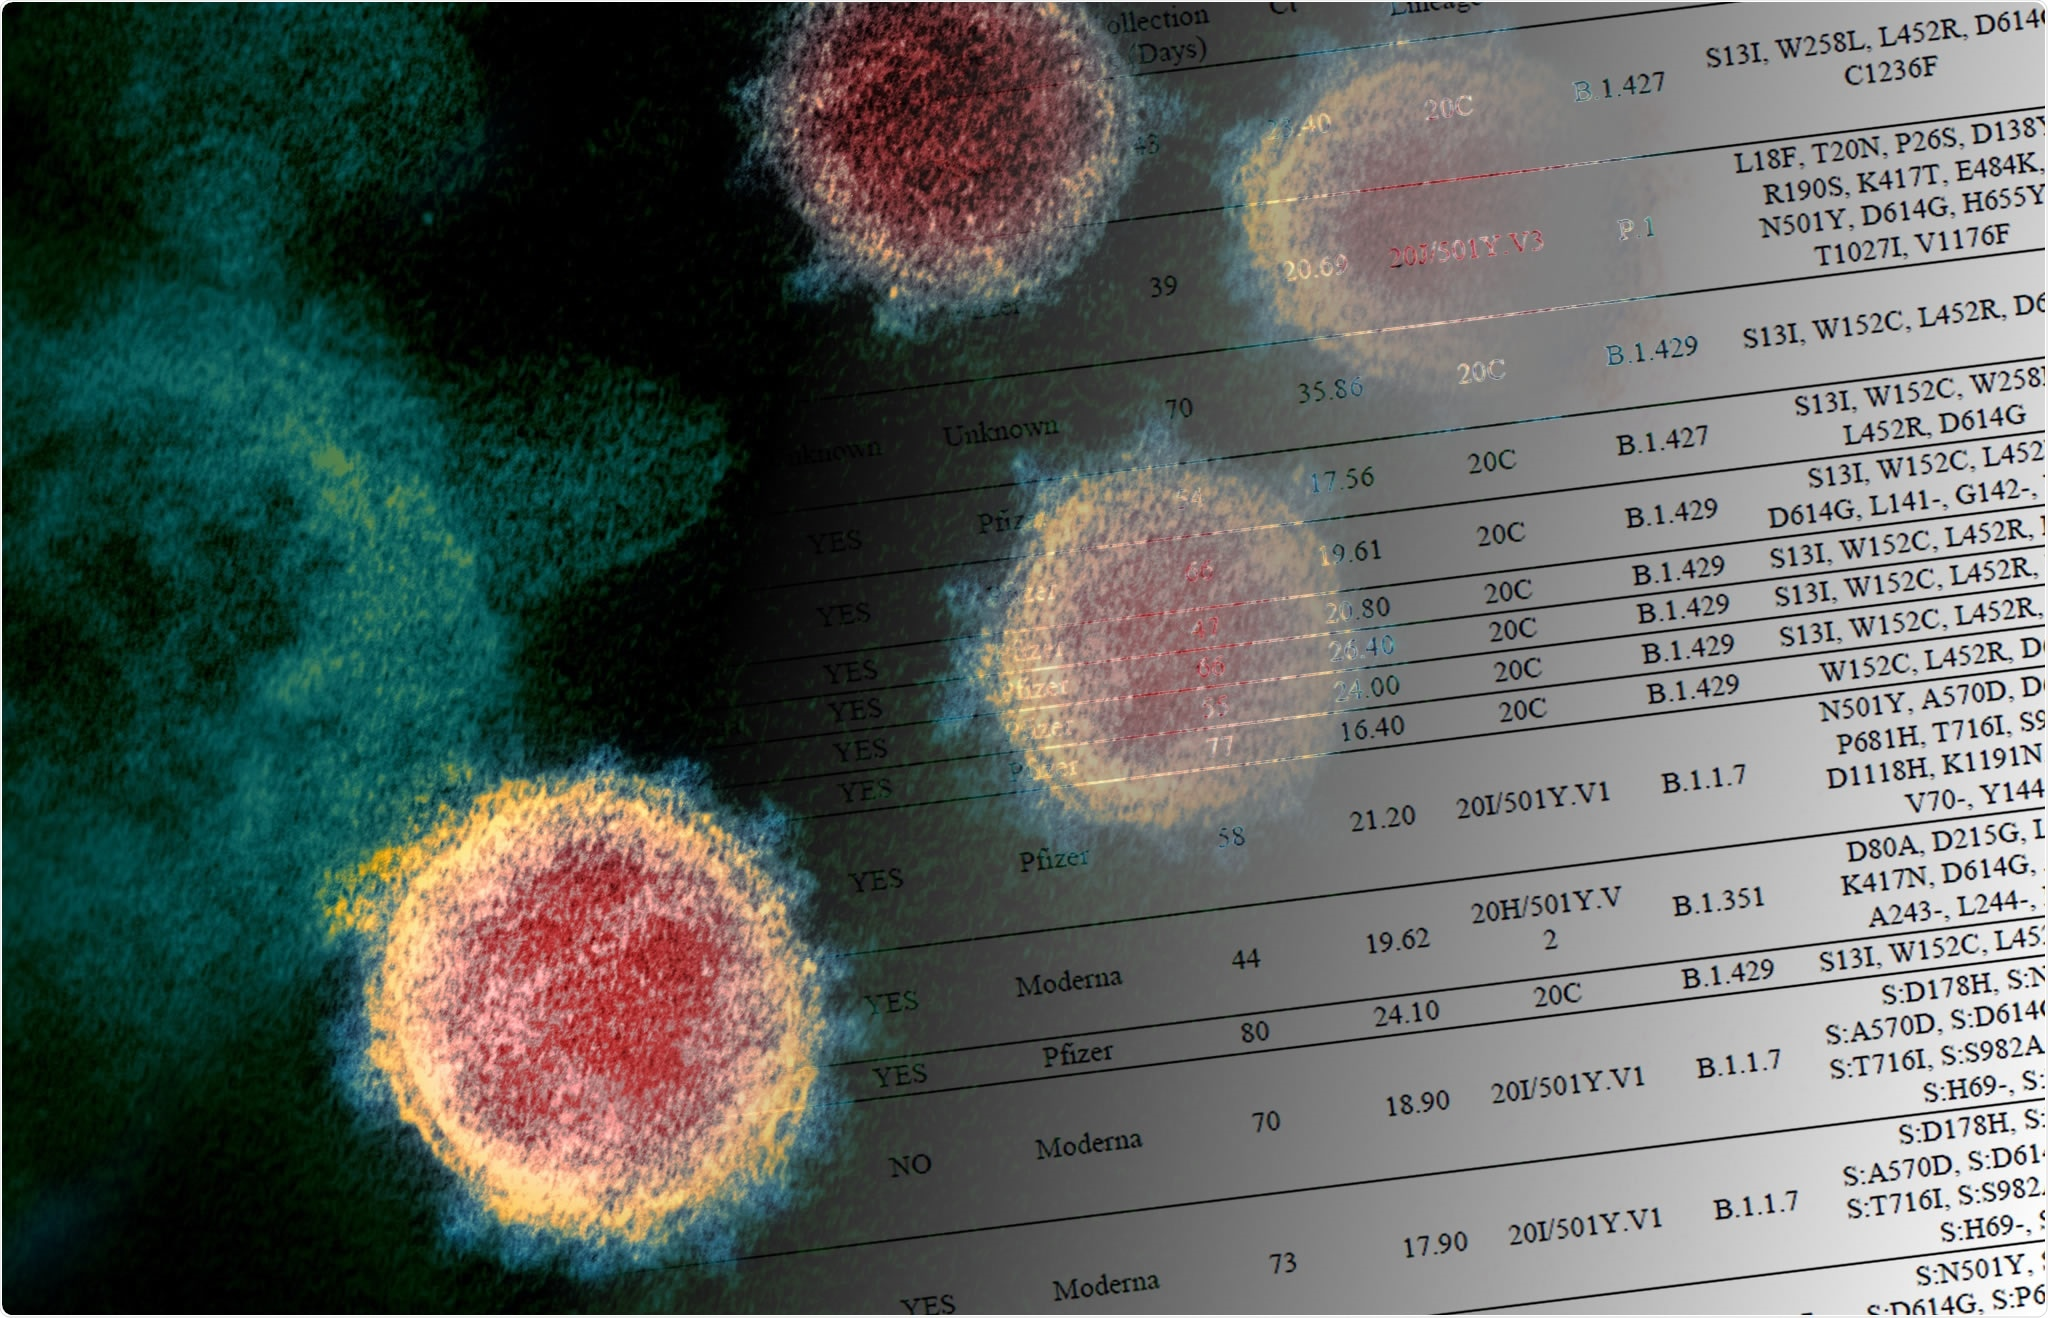 Study: Variants of concern are overrepresented among post-vaccination breakthrough infections of SARS-CoV-2 in Washington State. Image Credit NIAID